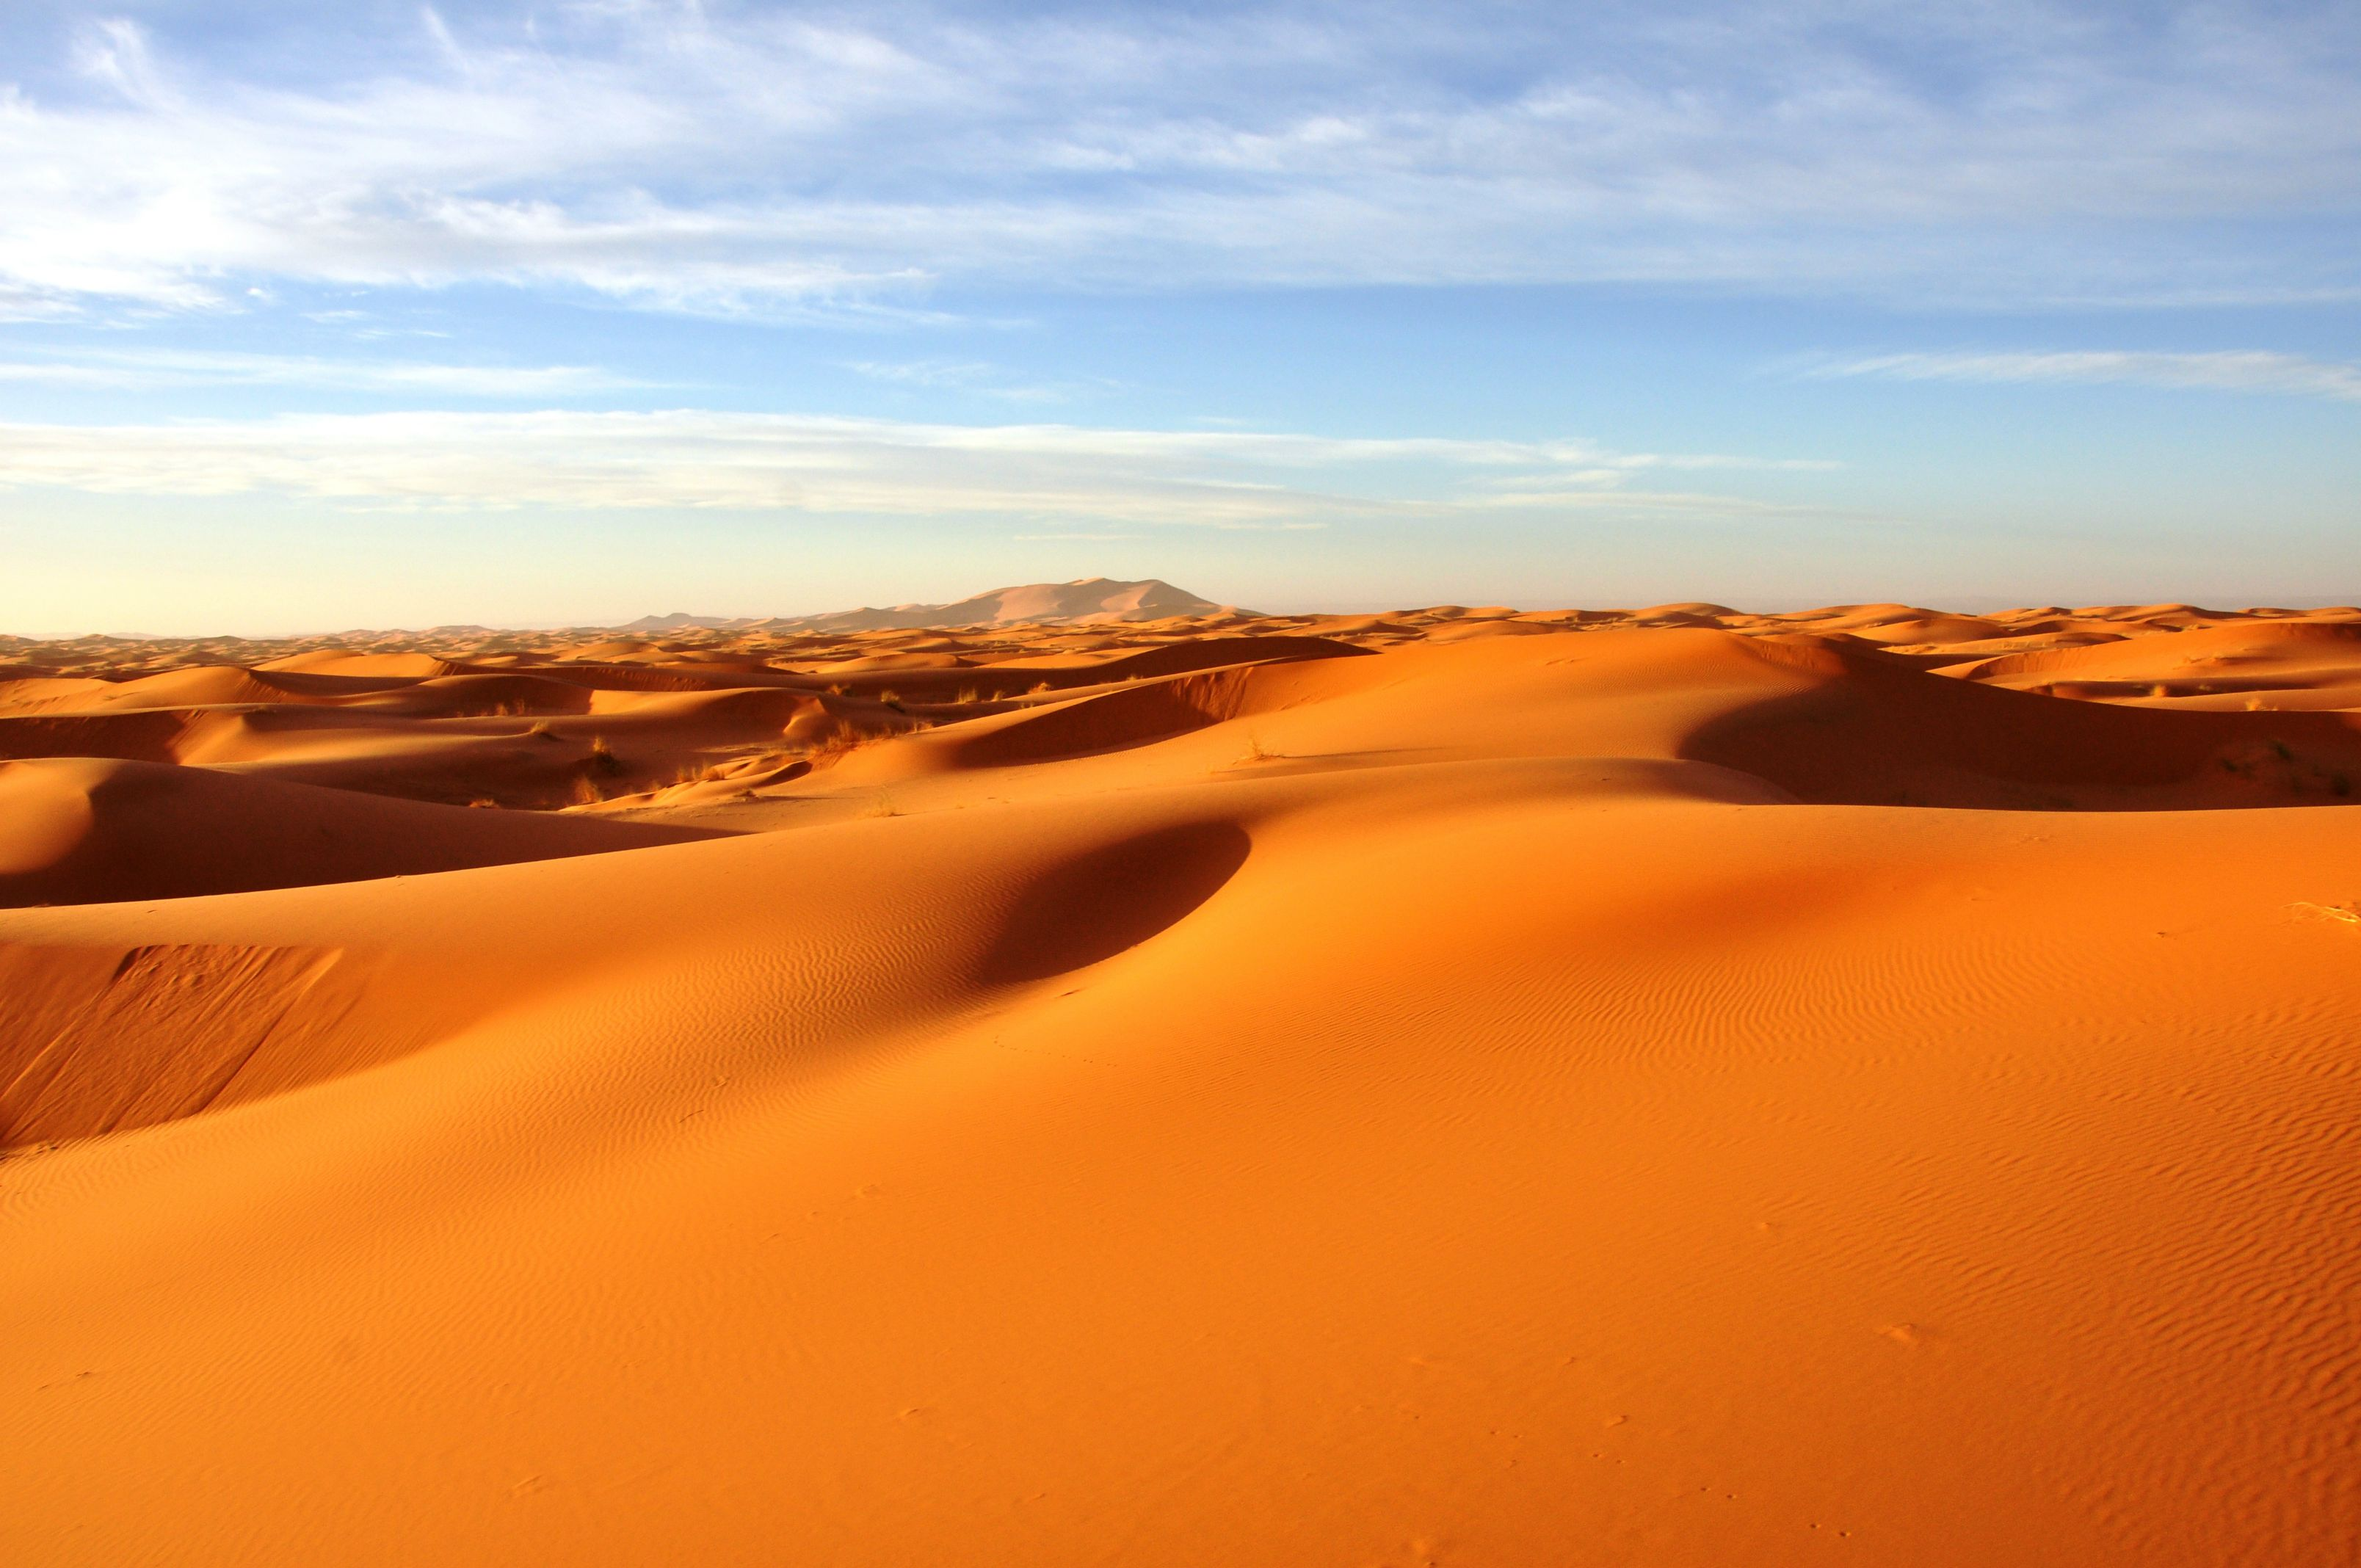 Sea of dunes in Merzouga, Morocco